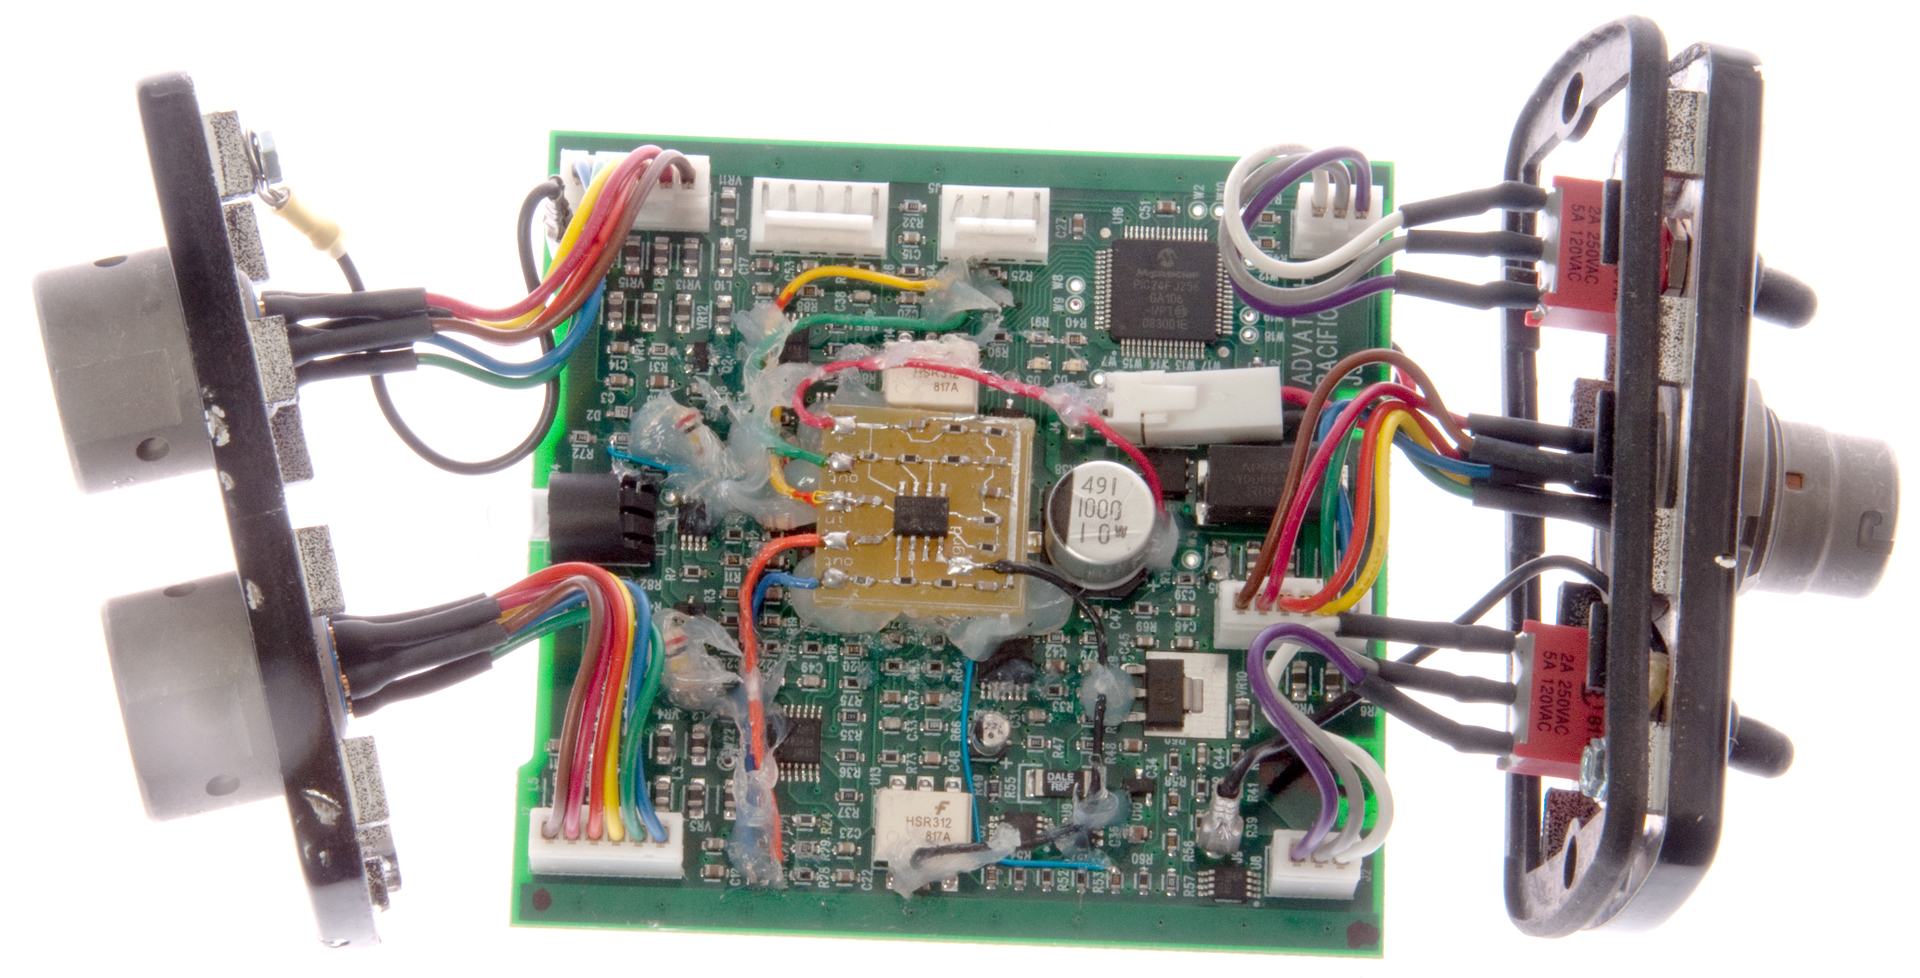 AdvPacuG3b u 229 pin out h-250 handset wiring diagram at mifinder.co